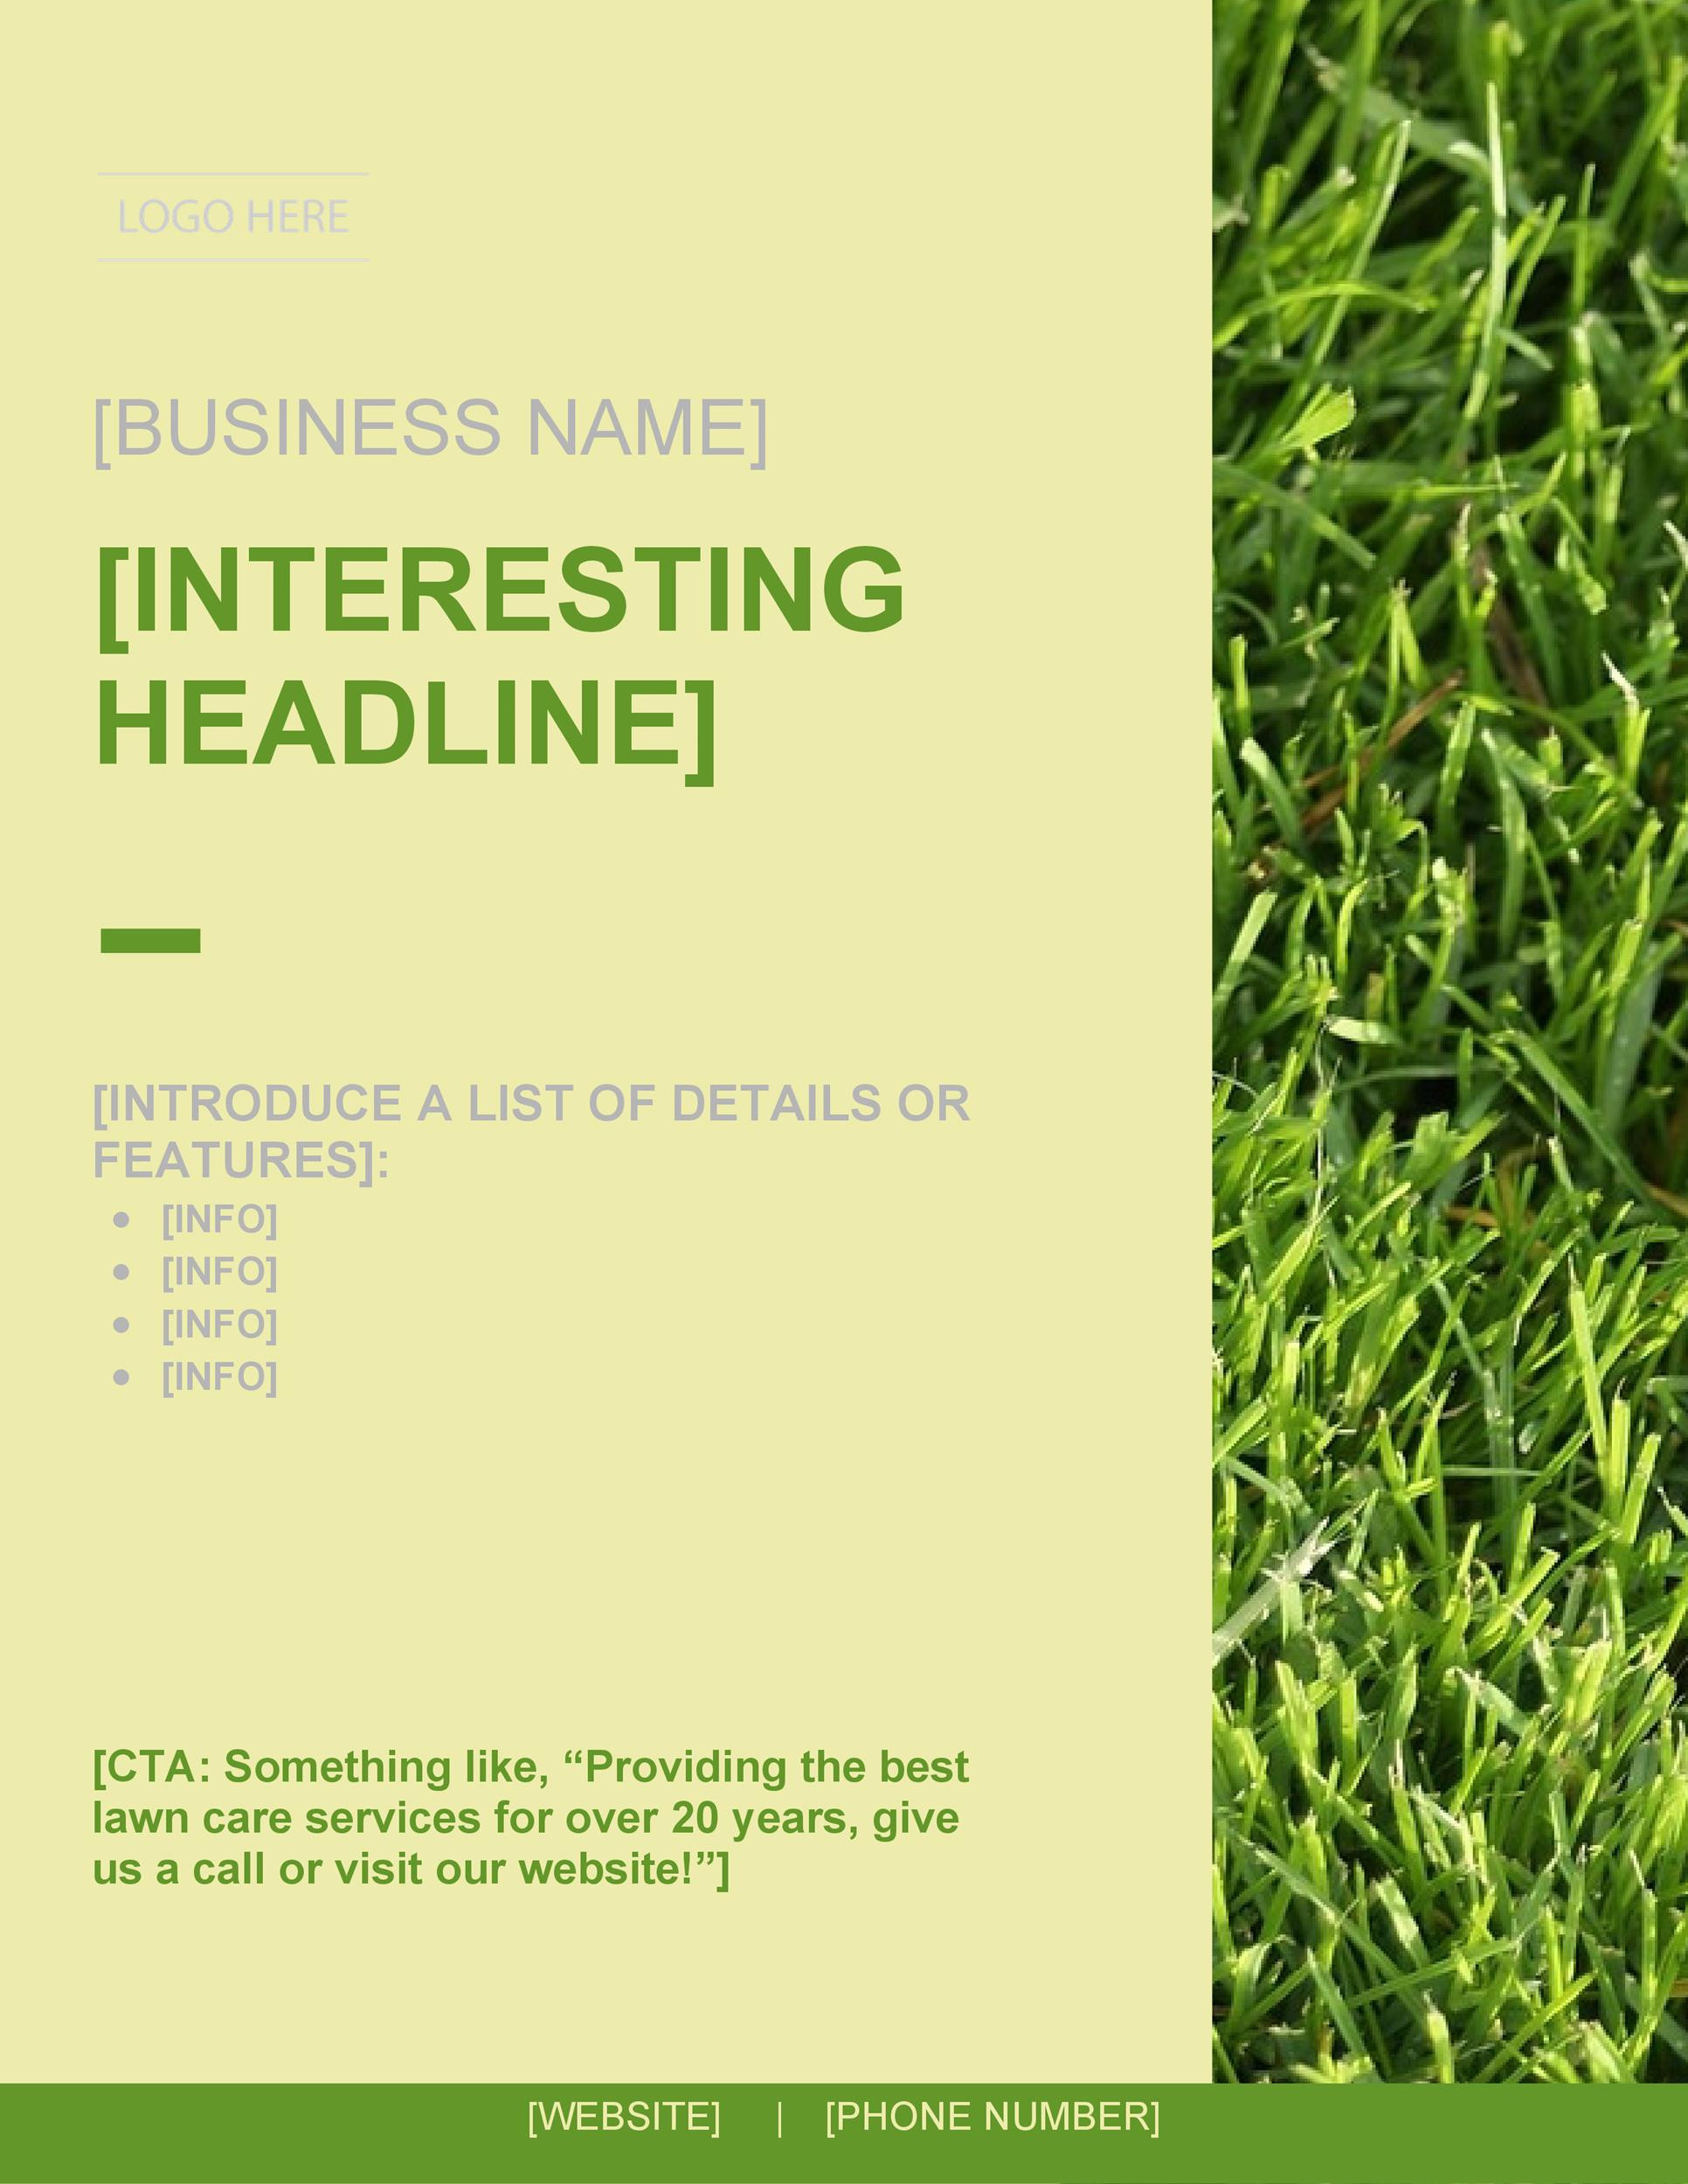 30 Free Lawn Care Flyer Templates [Lawn Mower Flyers]